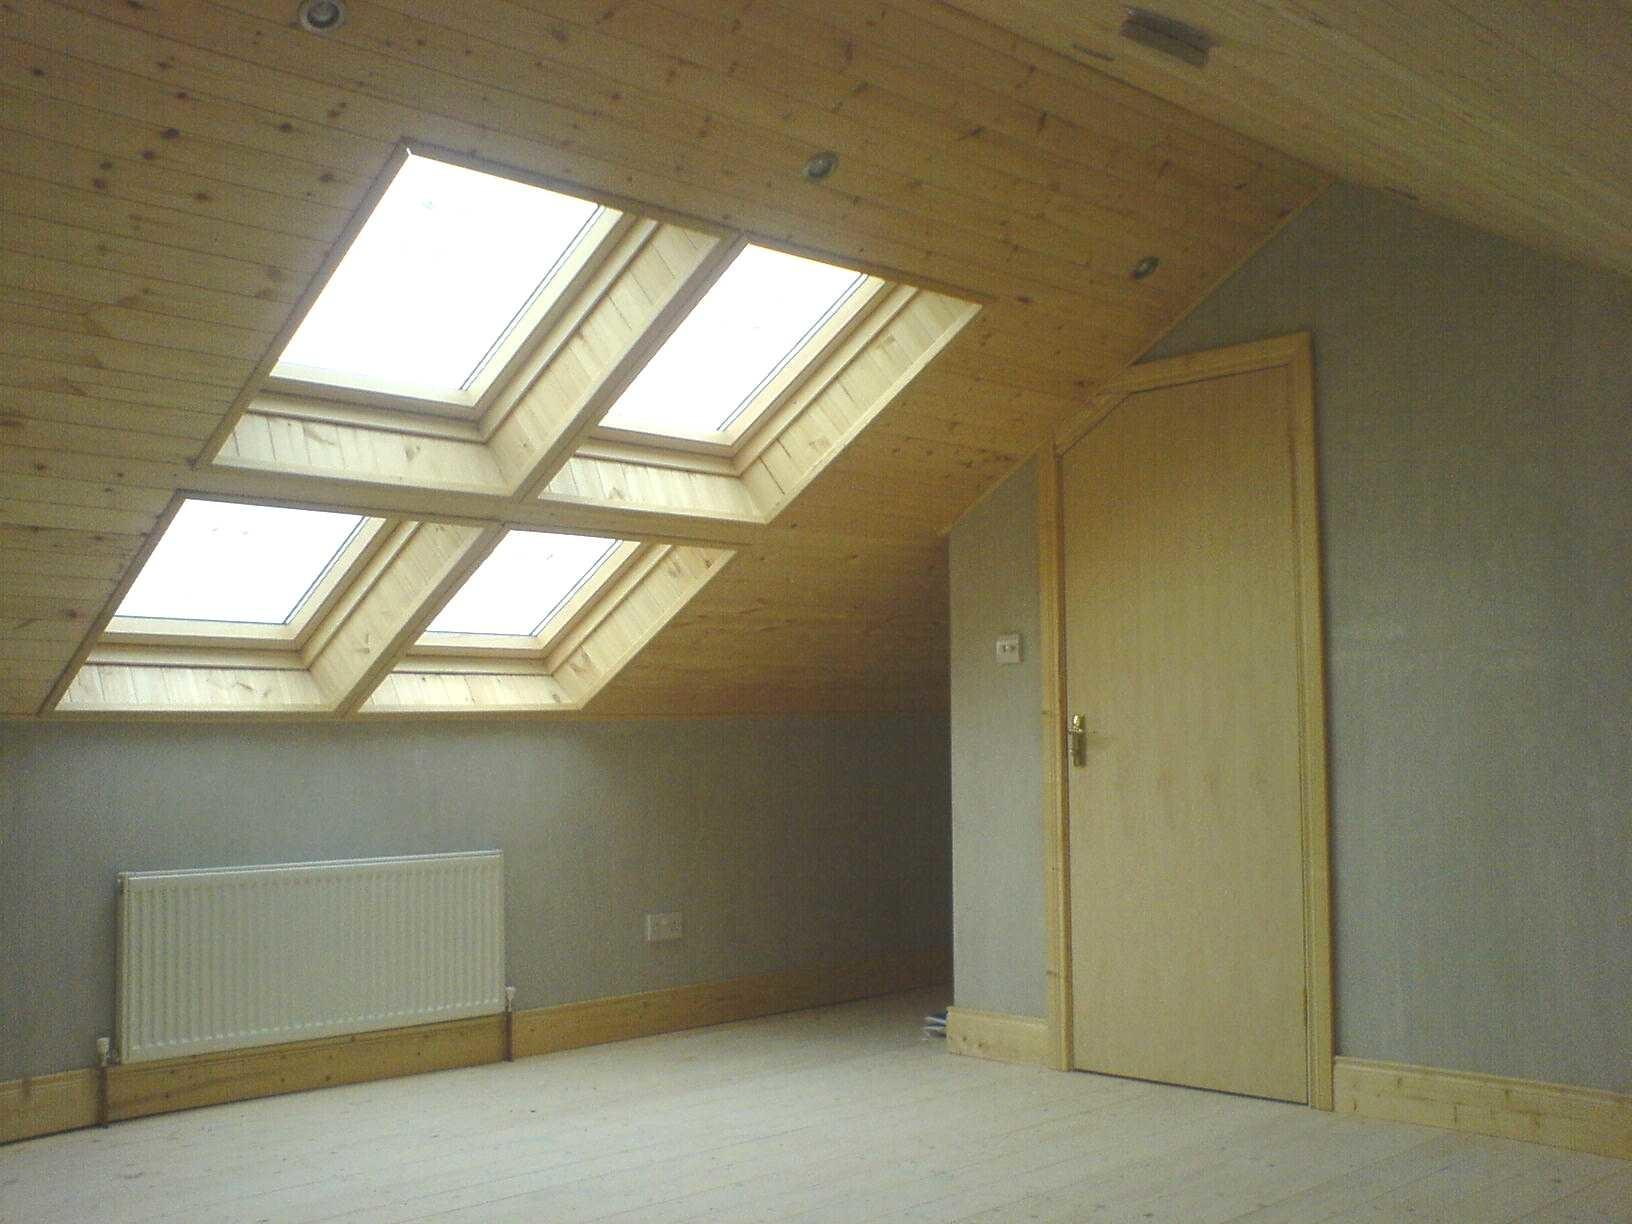 Picturesque Wooden Ceiling Designs Square Skylights